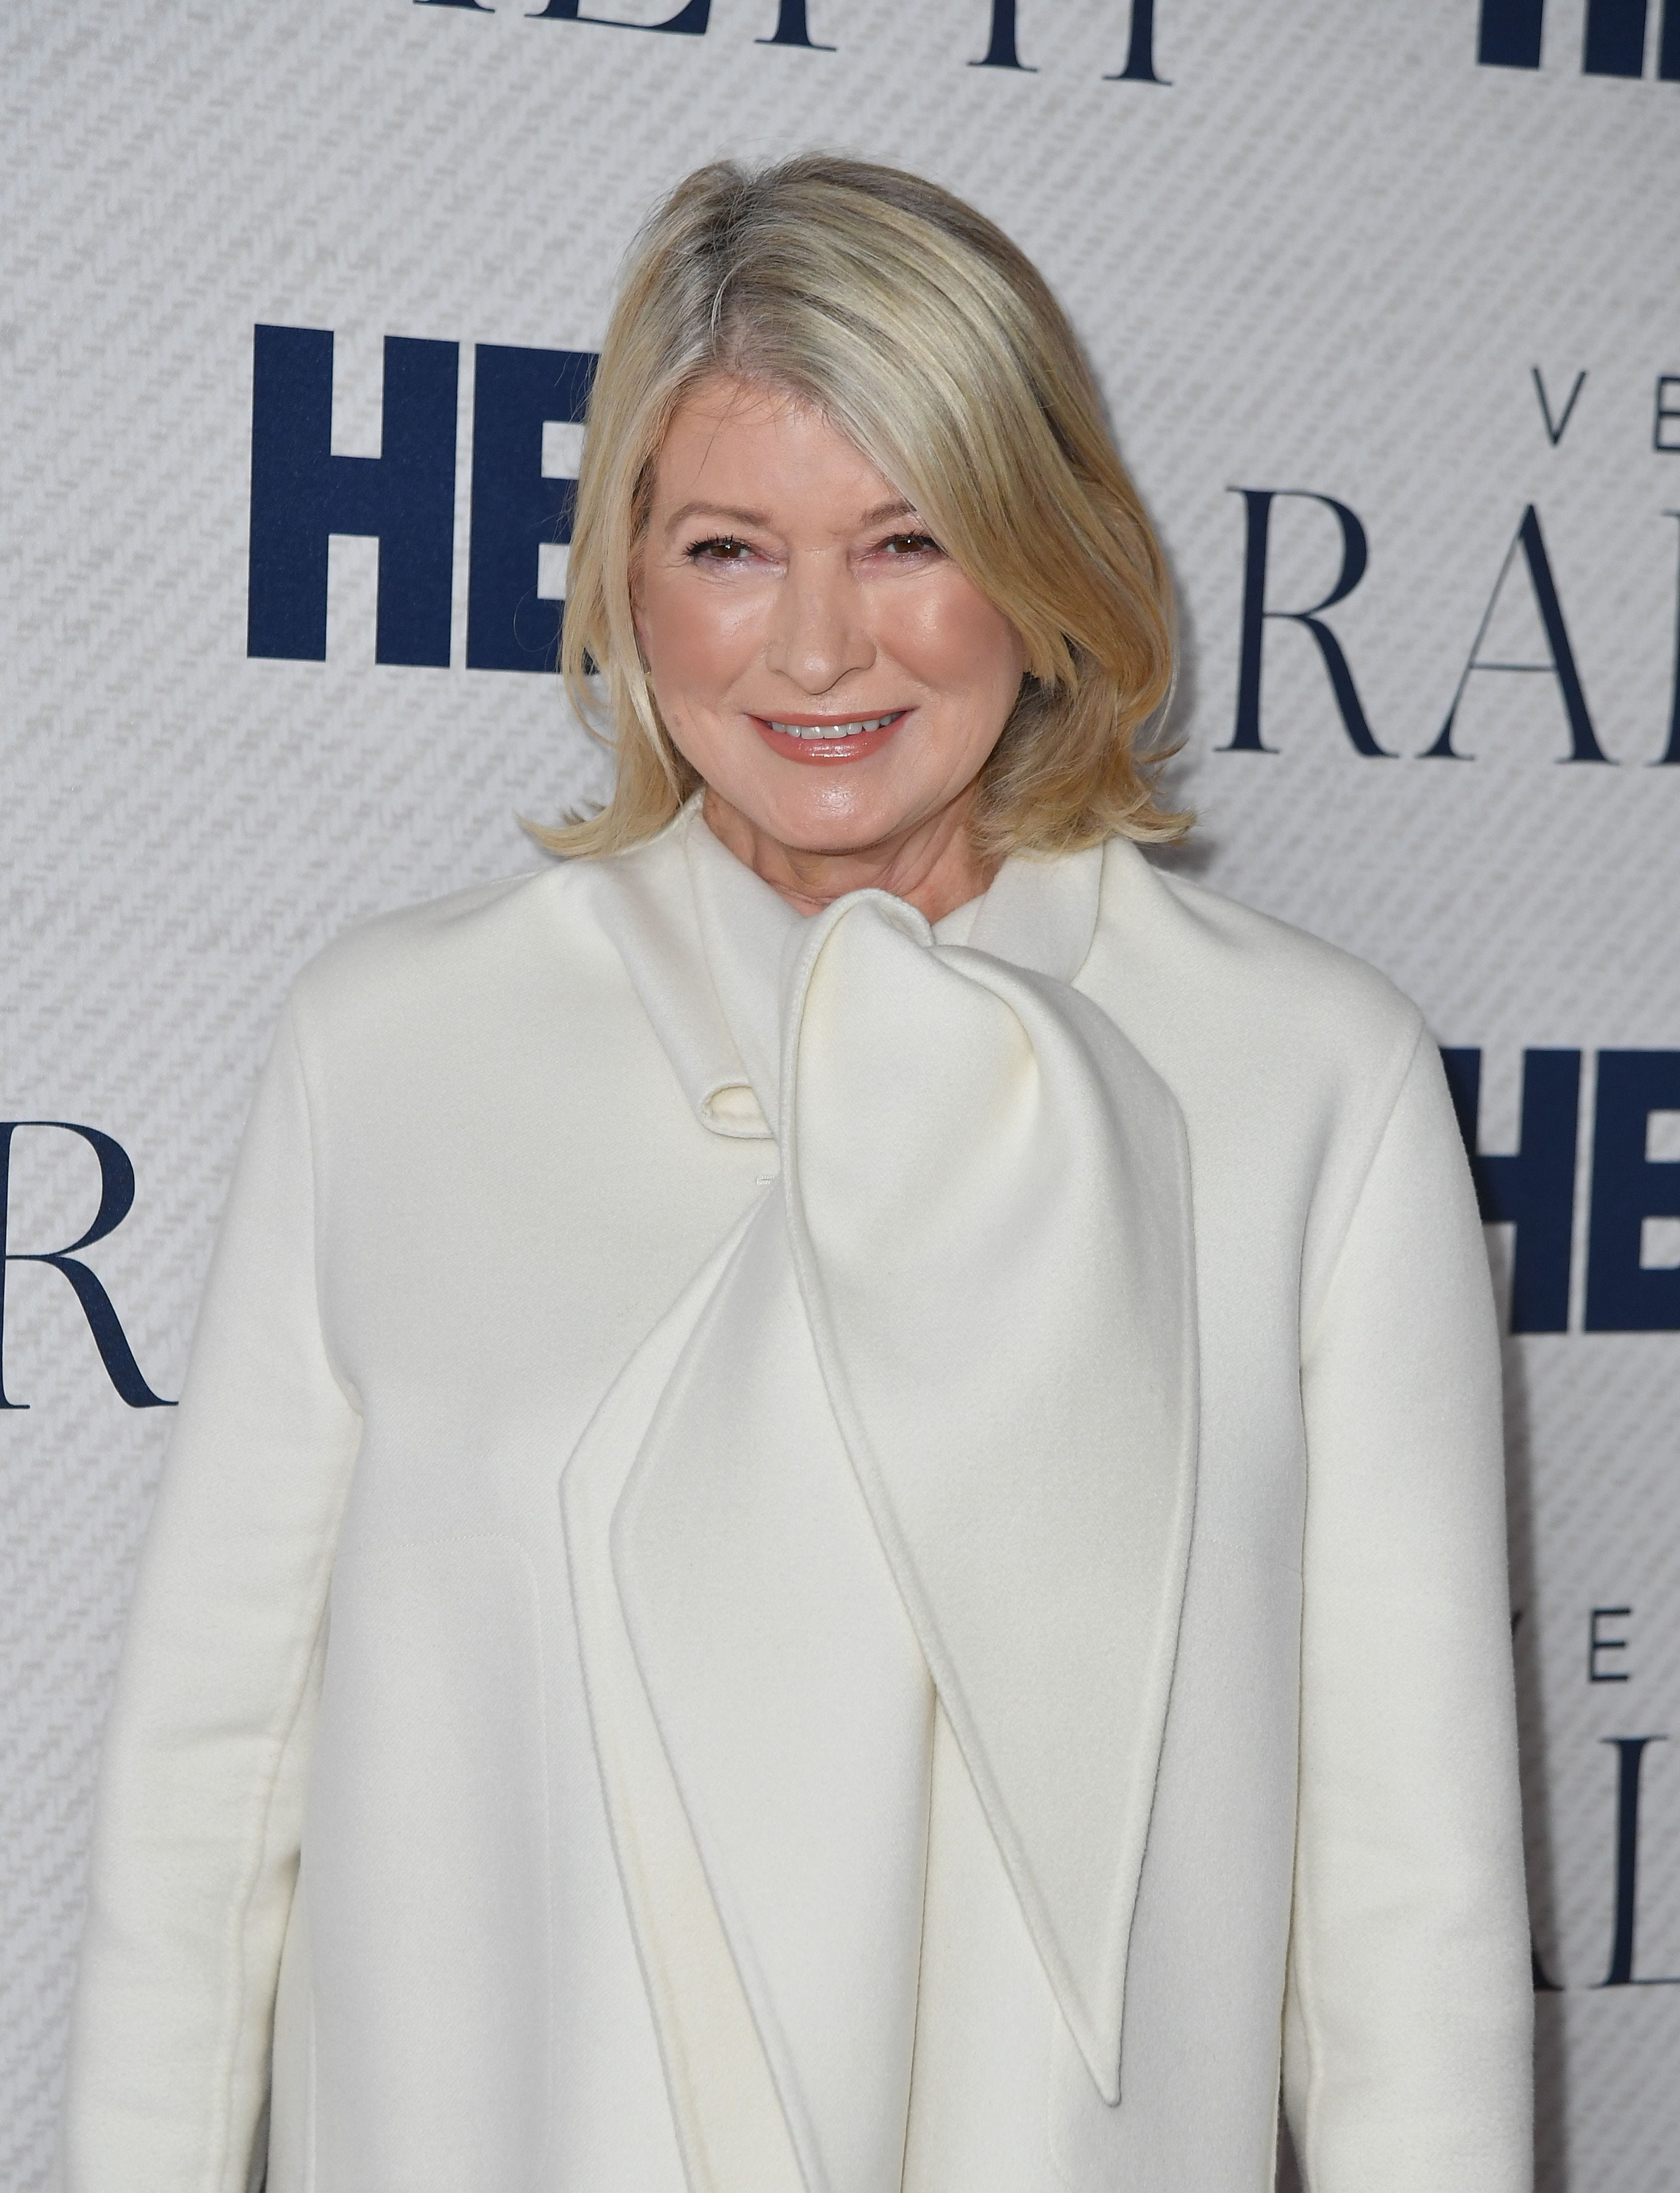 """Businesswoman and television personality Martha Stewart in 2019, one of the celebrities promoting SPACs. Chester Spatt, a former SEC economist, says that just because some high-profile SPACS have included celebrity partners that """"doesn't give me a lot of reassurance or confidence"""" that they are a good investment."""